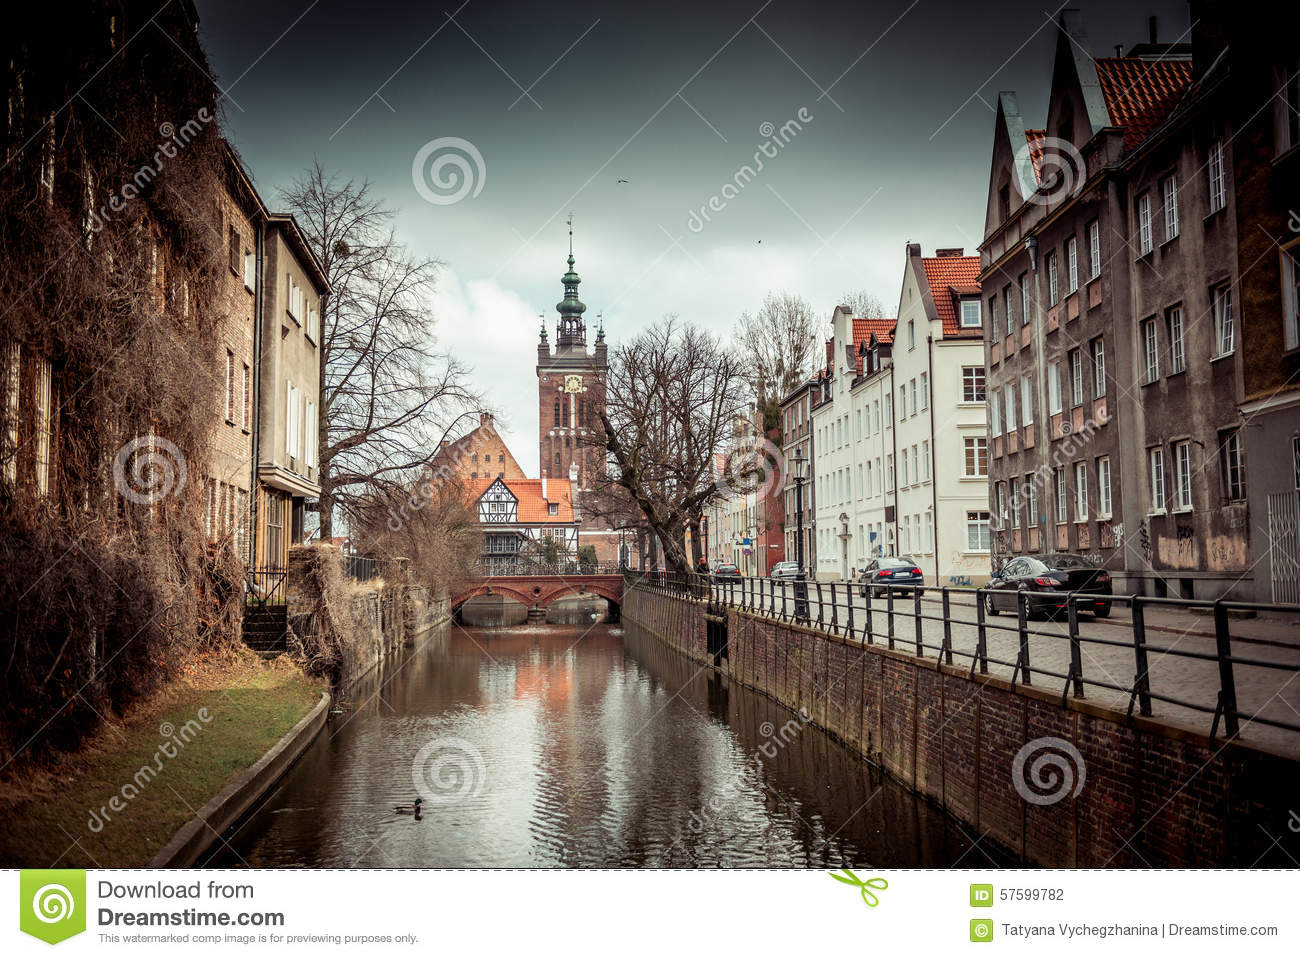 Canal In The Old Town Of Gdansk, Poland Stock Photo - Image: 57599782